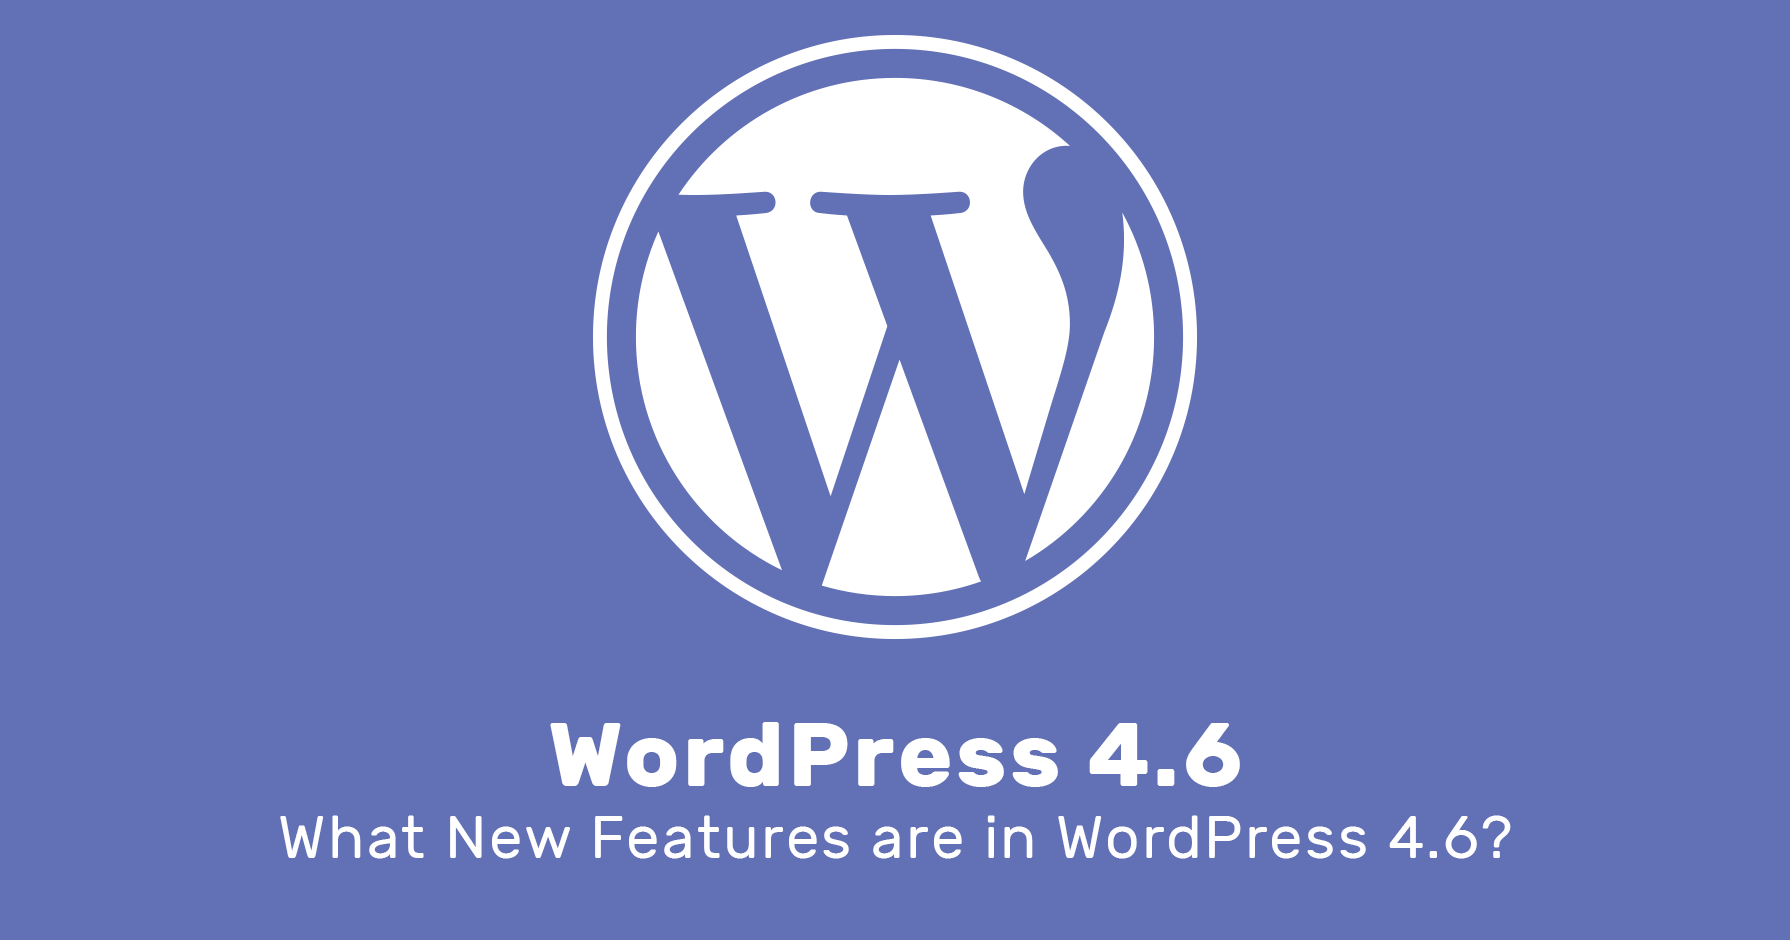 What New Features are in WordPress 4.6?